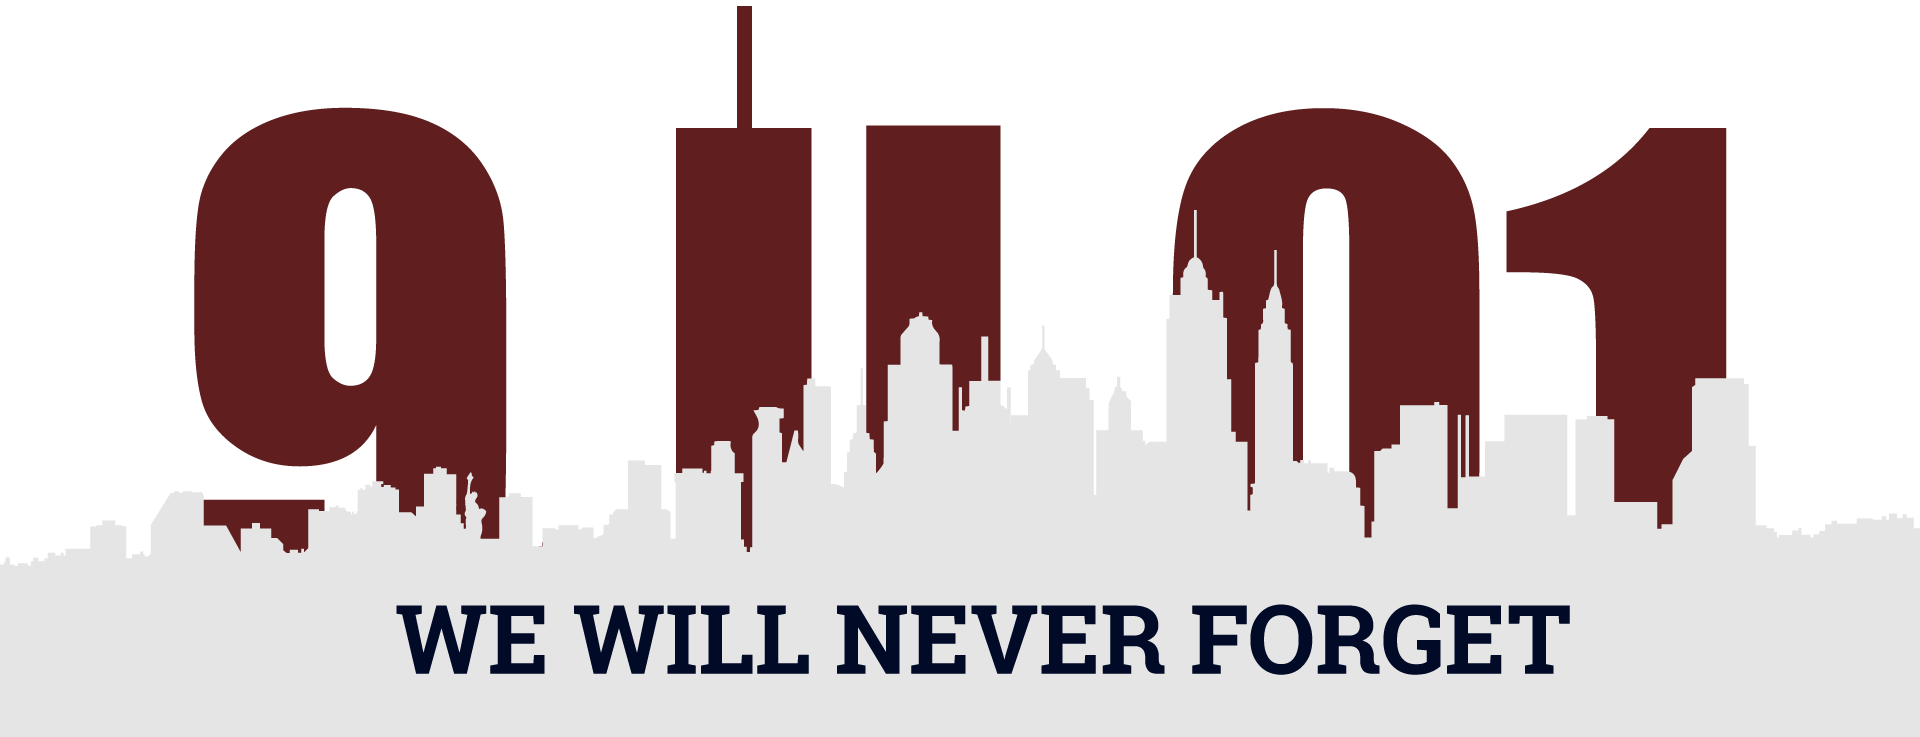 Never Forget 9 11 PNG - 78318